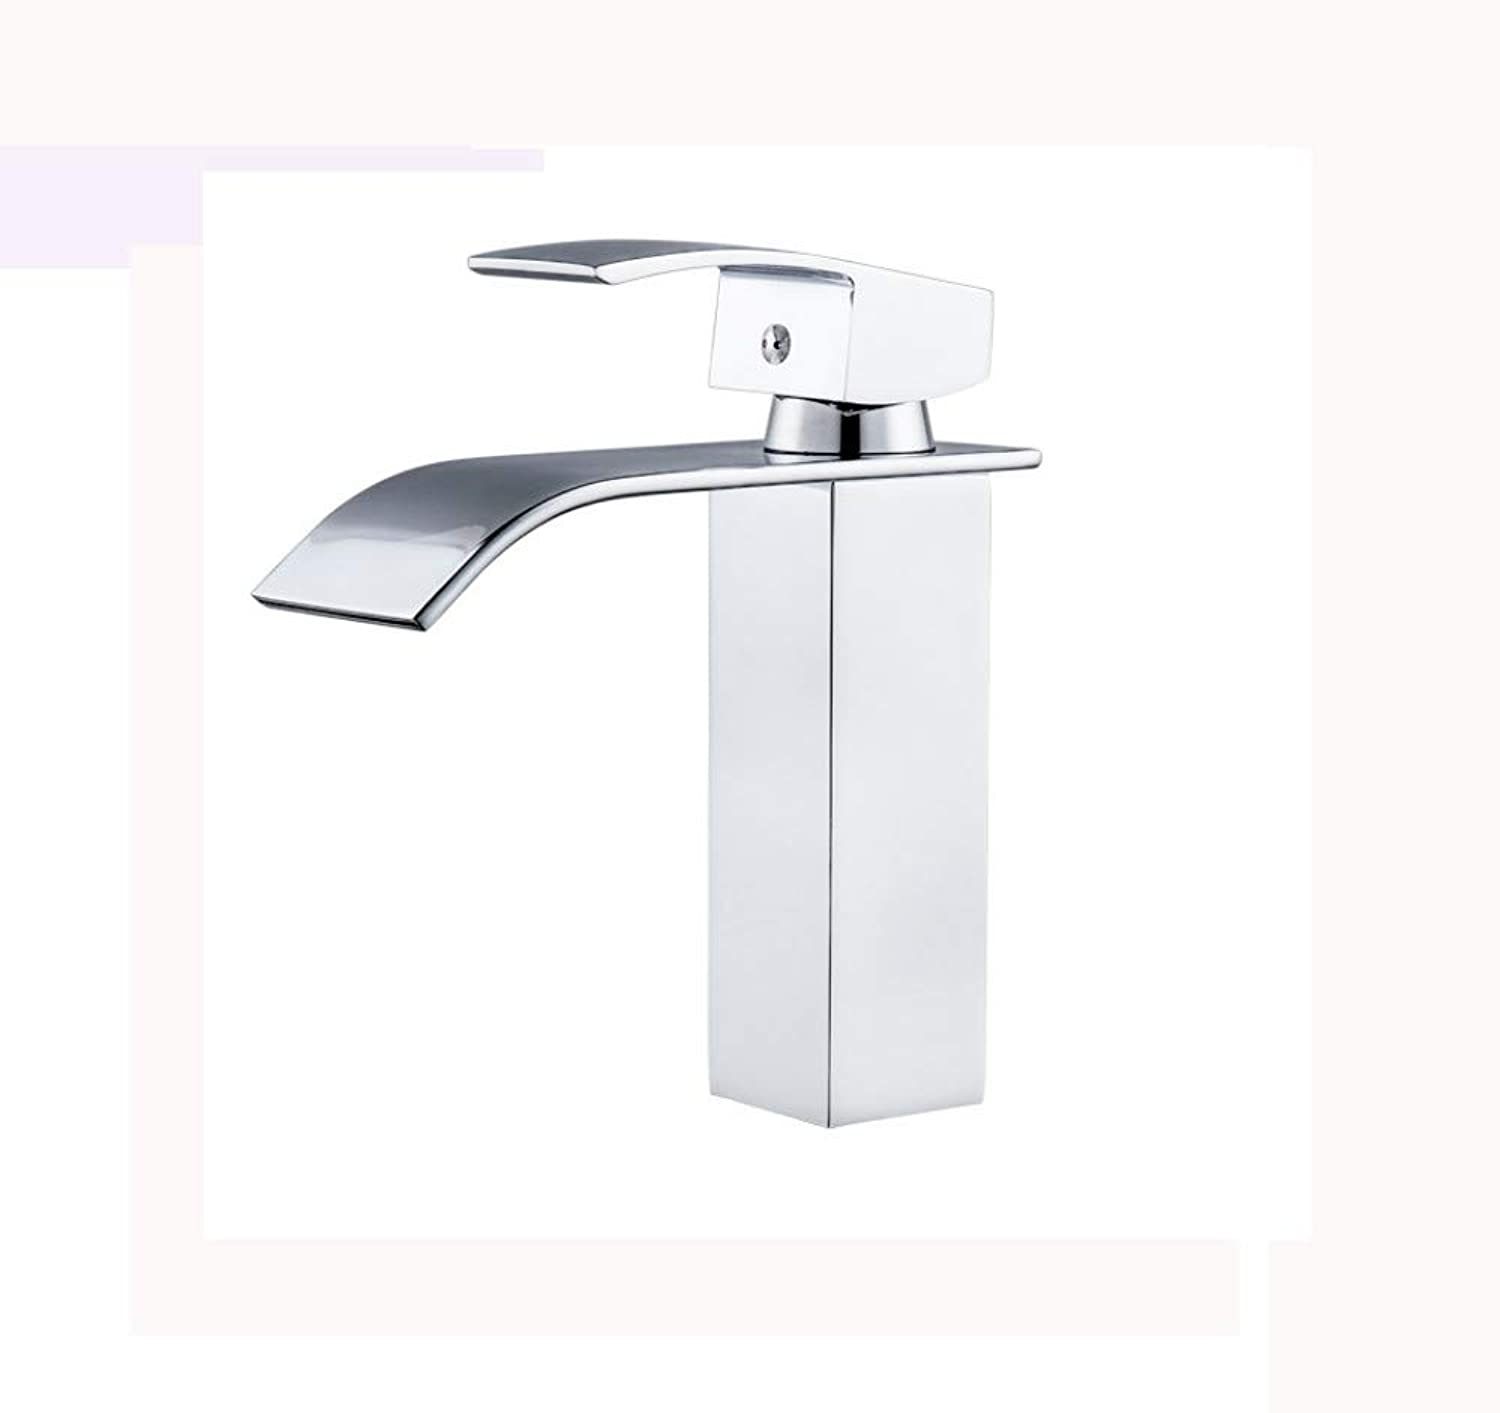 Faucet Four Sides Basin Faucet Wide Mouth Waterfall Bathroom wash Basin hot and Cold Faucet